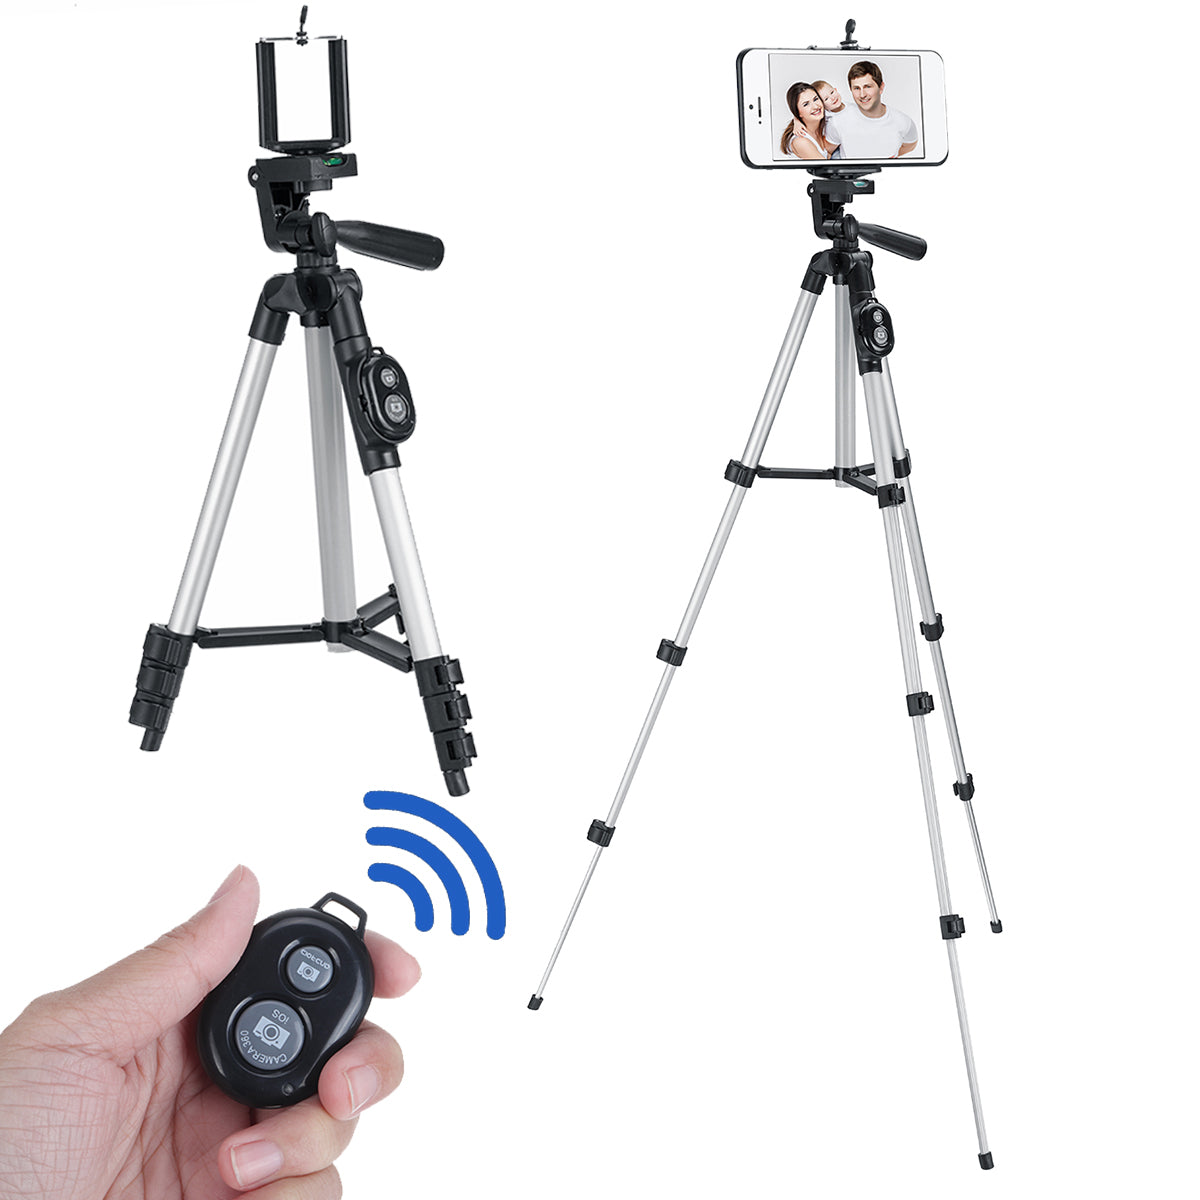 Portable Flexible Long Tripod Camera Stand bluetooth Remote Control with Phone Holder for Cell Phone